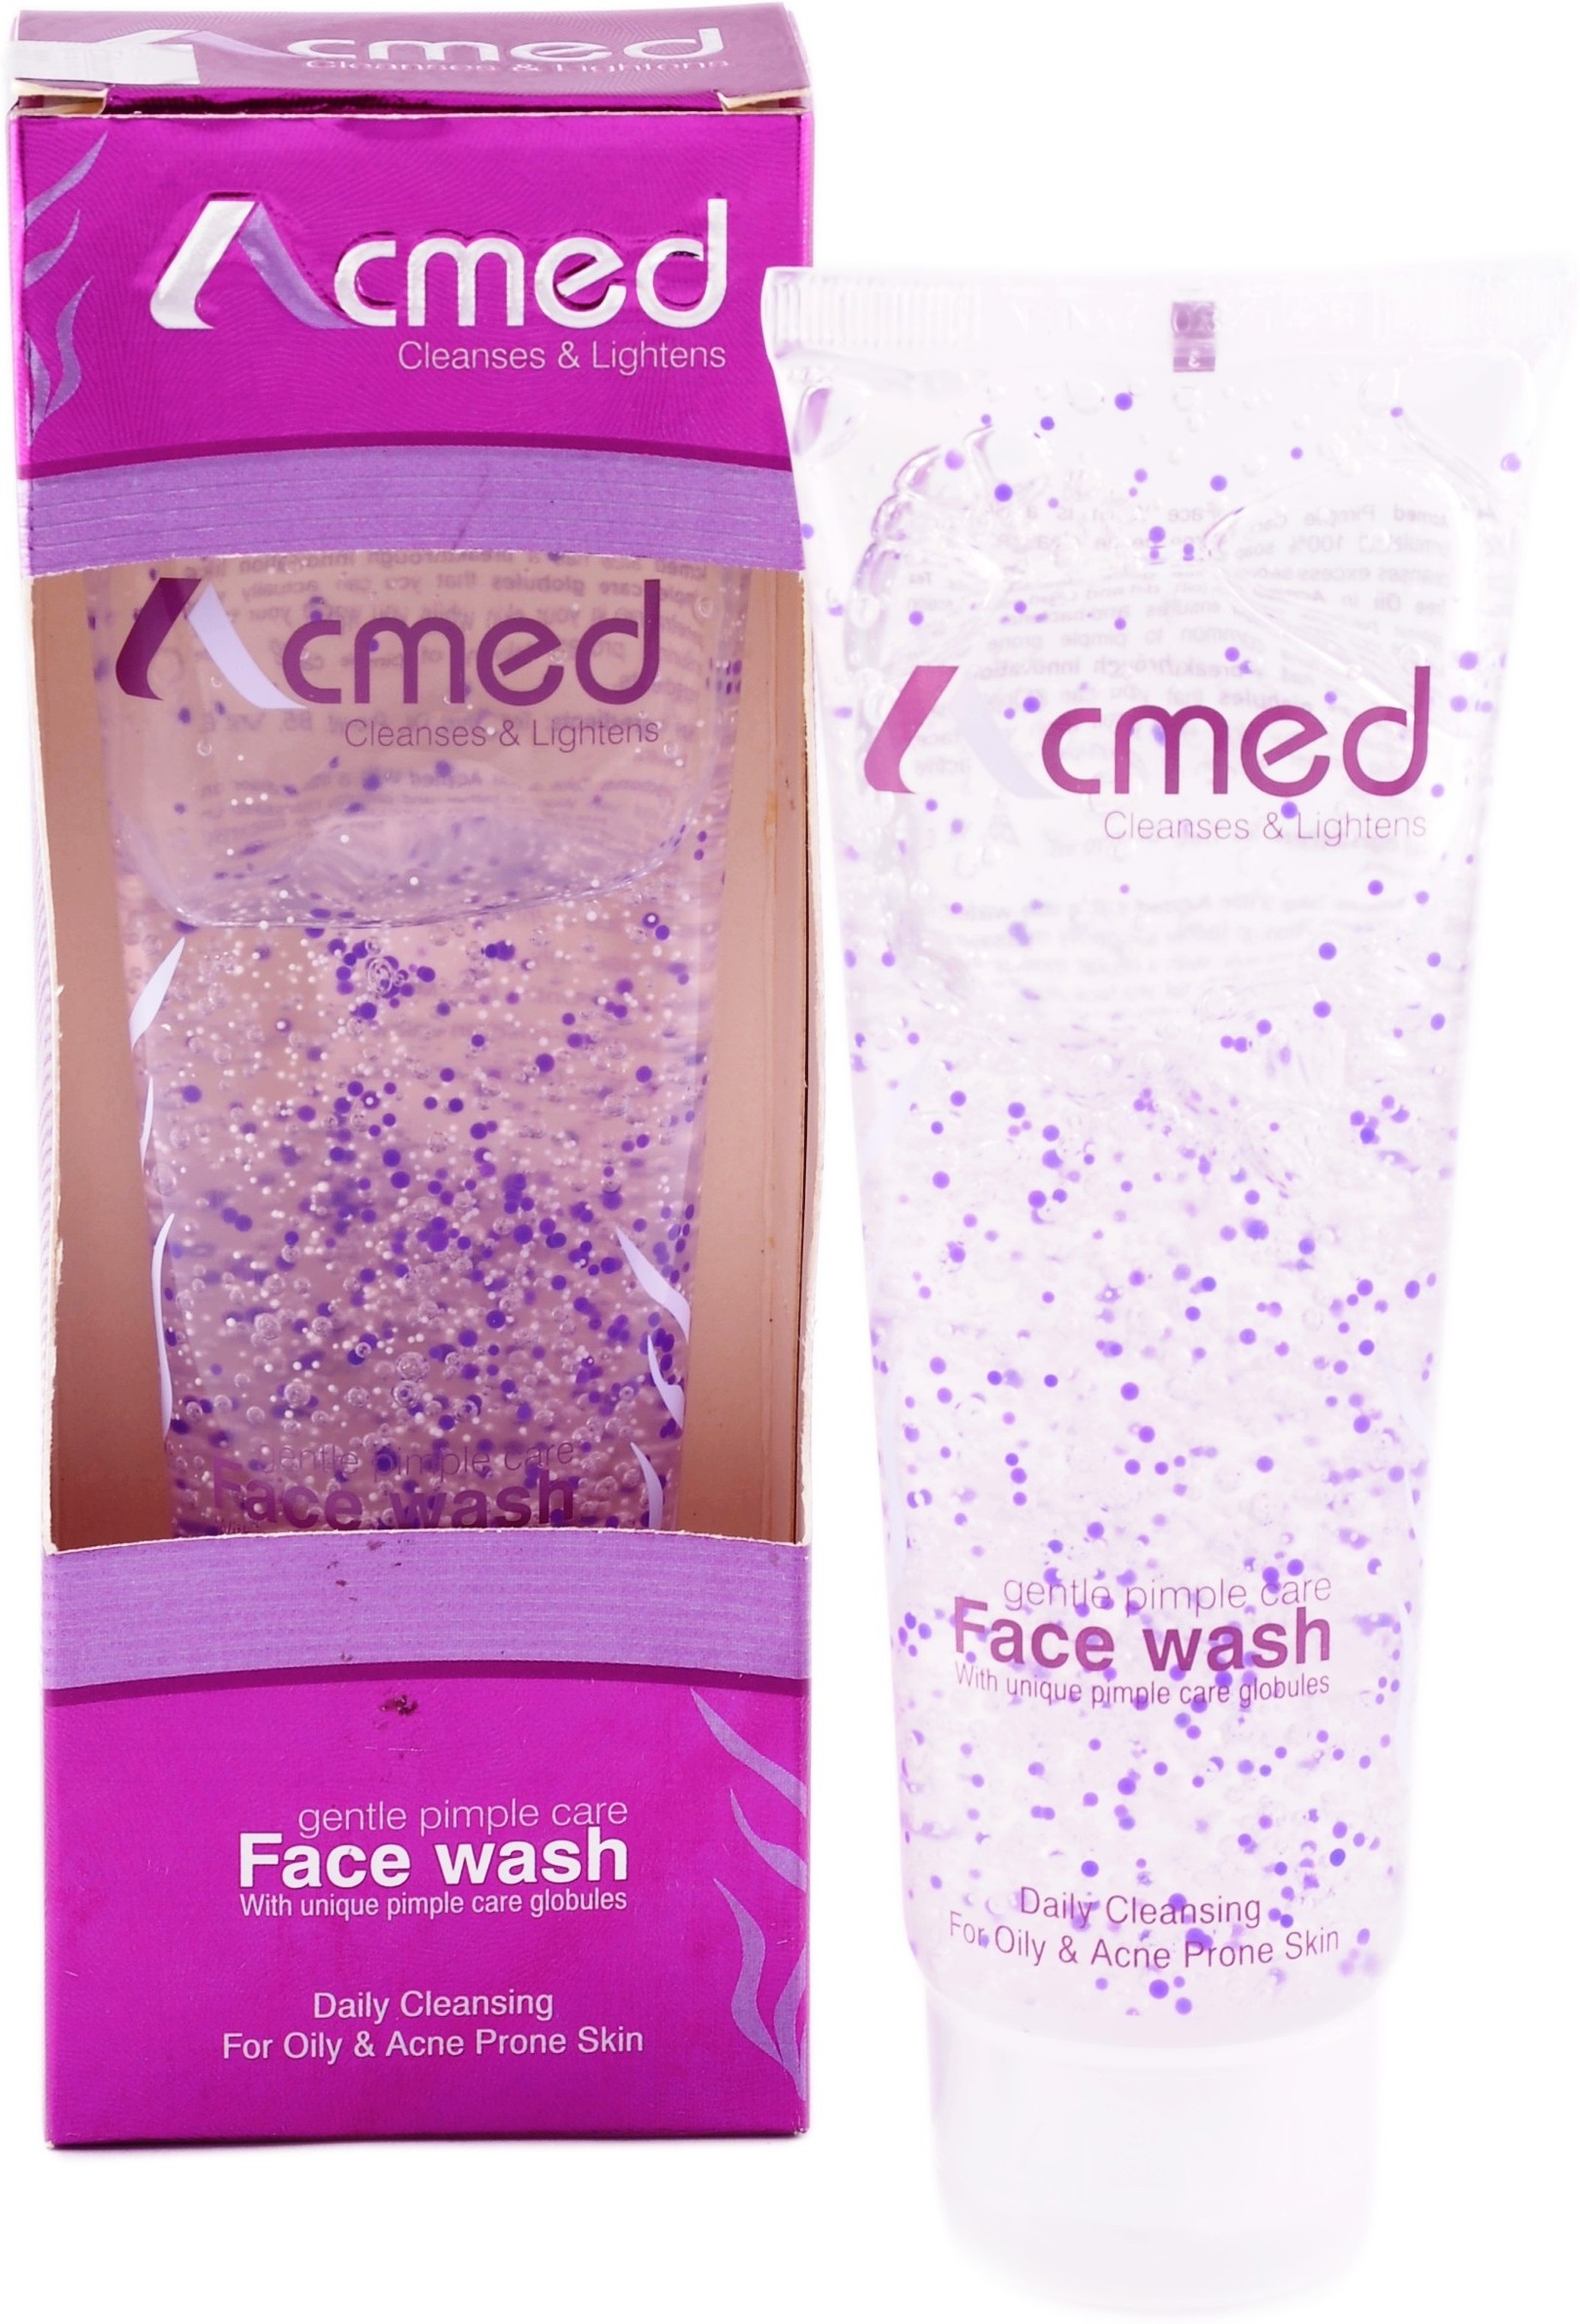 Acmed Pimple Care Face Wash Price In India Buy Acmed Pimple Care Face Wash Online In India